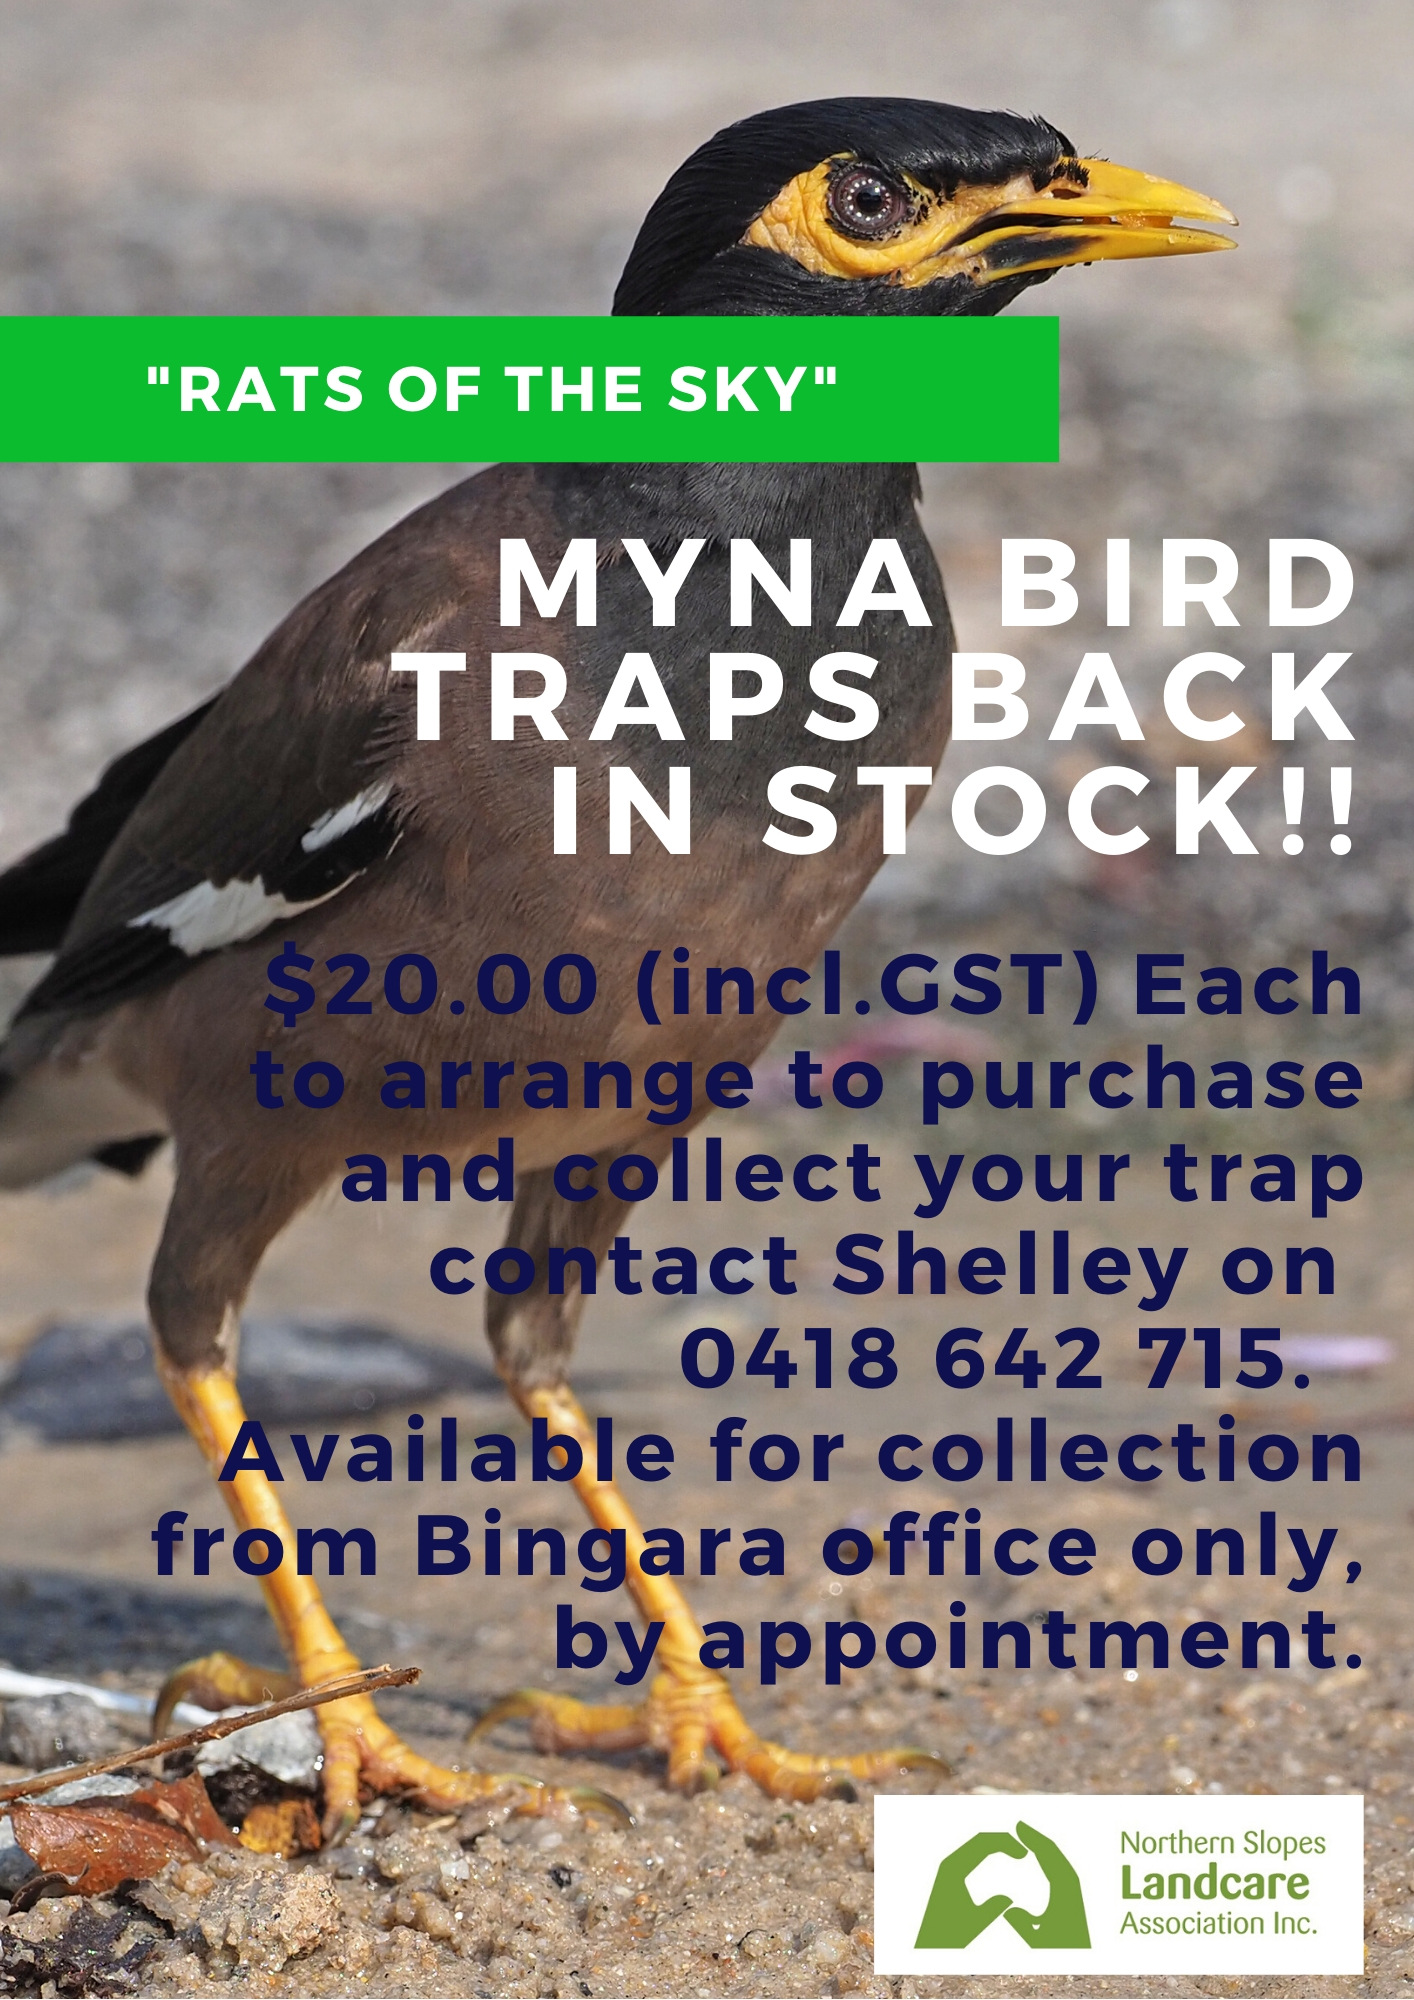 Indian Myna Traps now available